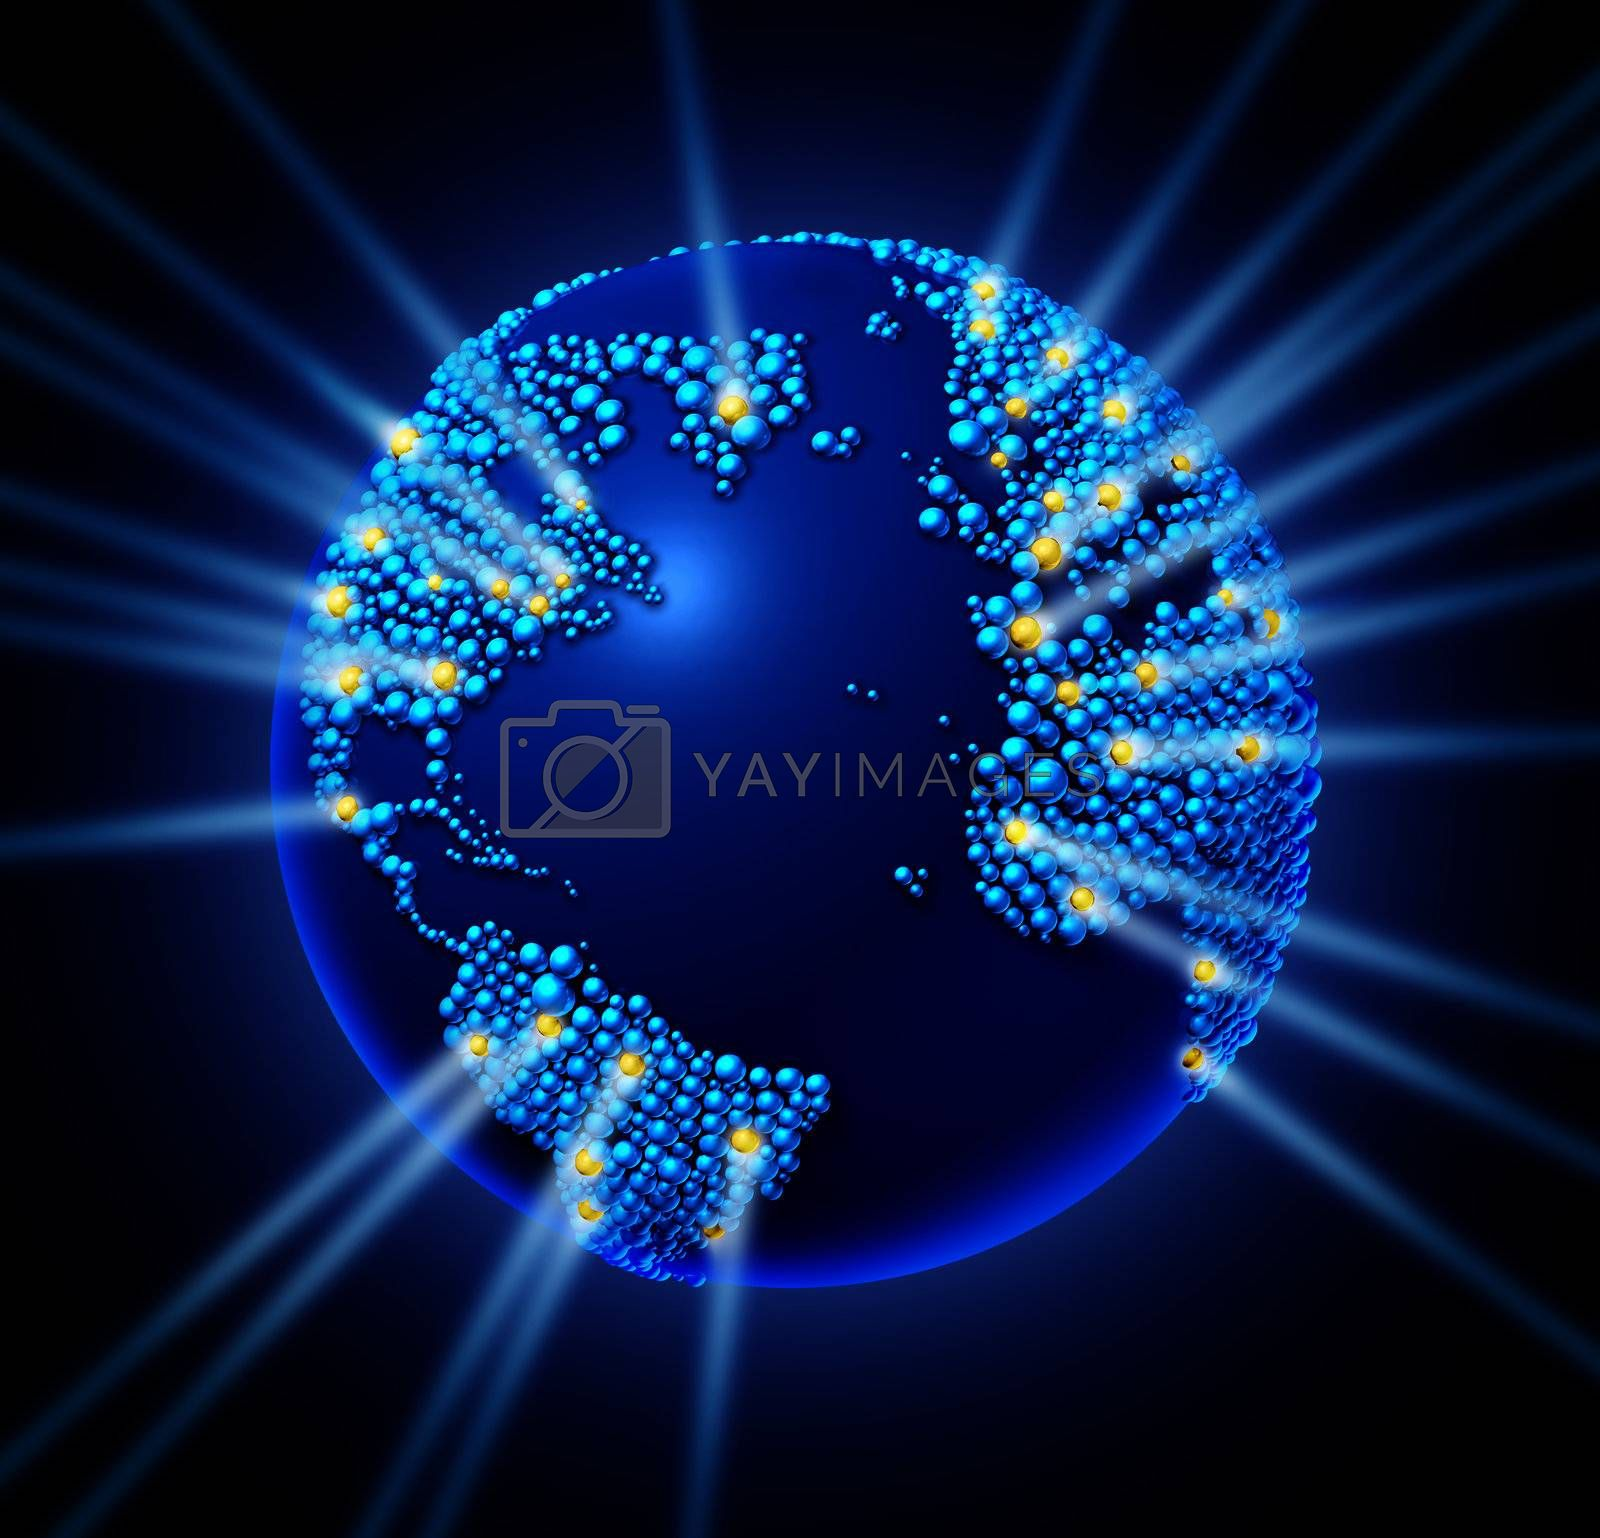 Global network world with the international map in the shape of small spheres with glowing laser lights as a technology icon and communication connections on a black background.